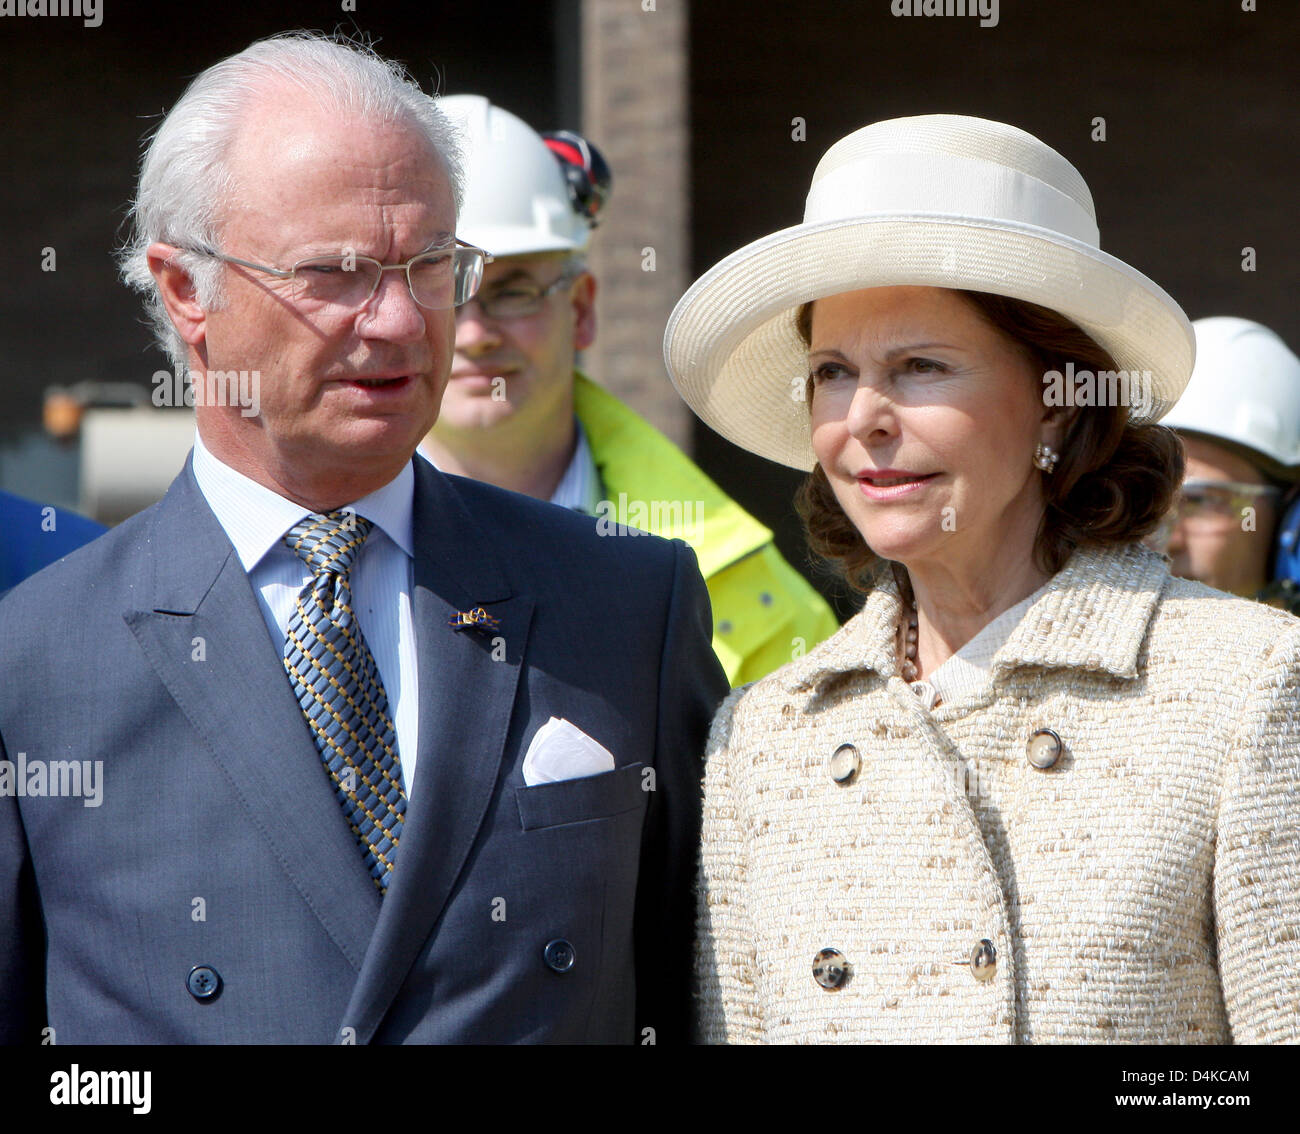 King Carl XVI Gustaf of Sweden (L) and Queen Silvia of Sweden (R) visit BIO MCN, a company which produces high quality - Stock Image